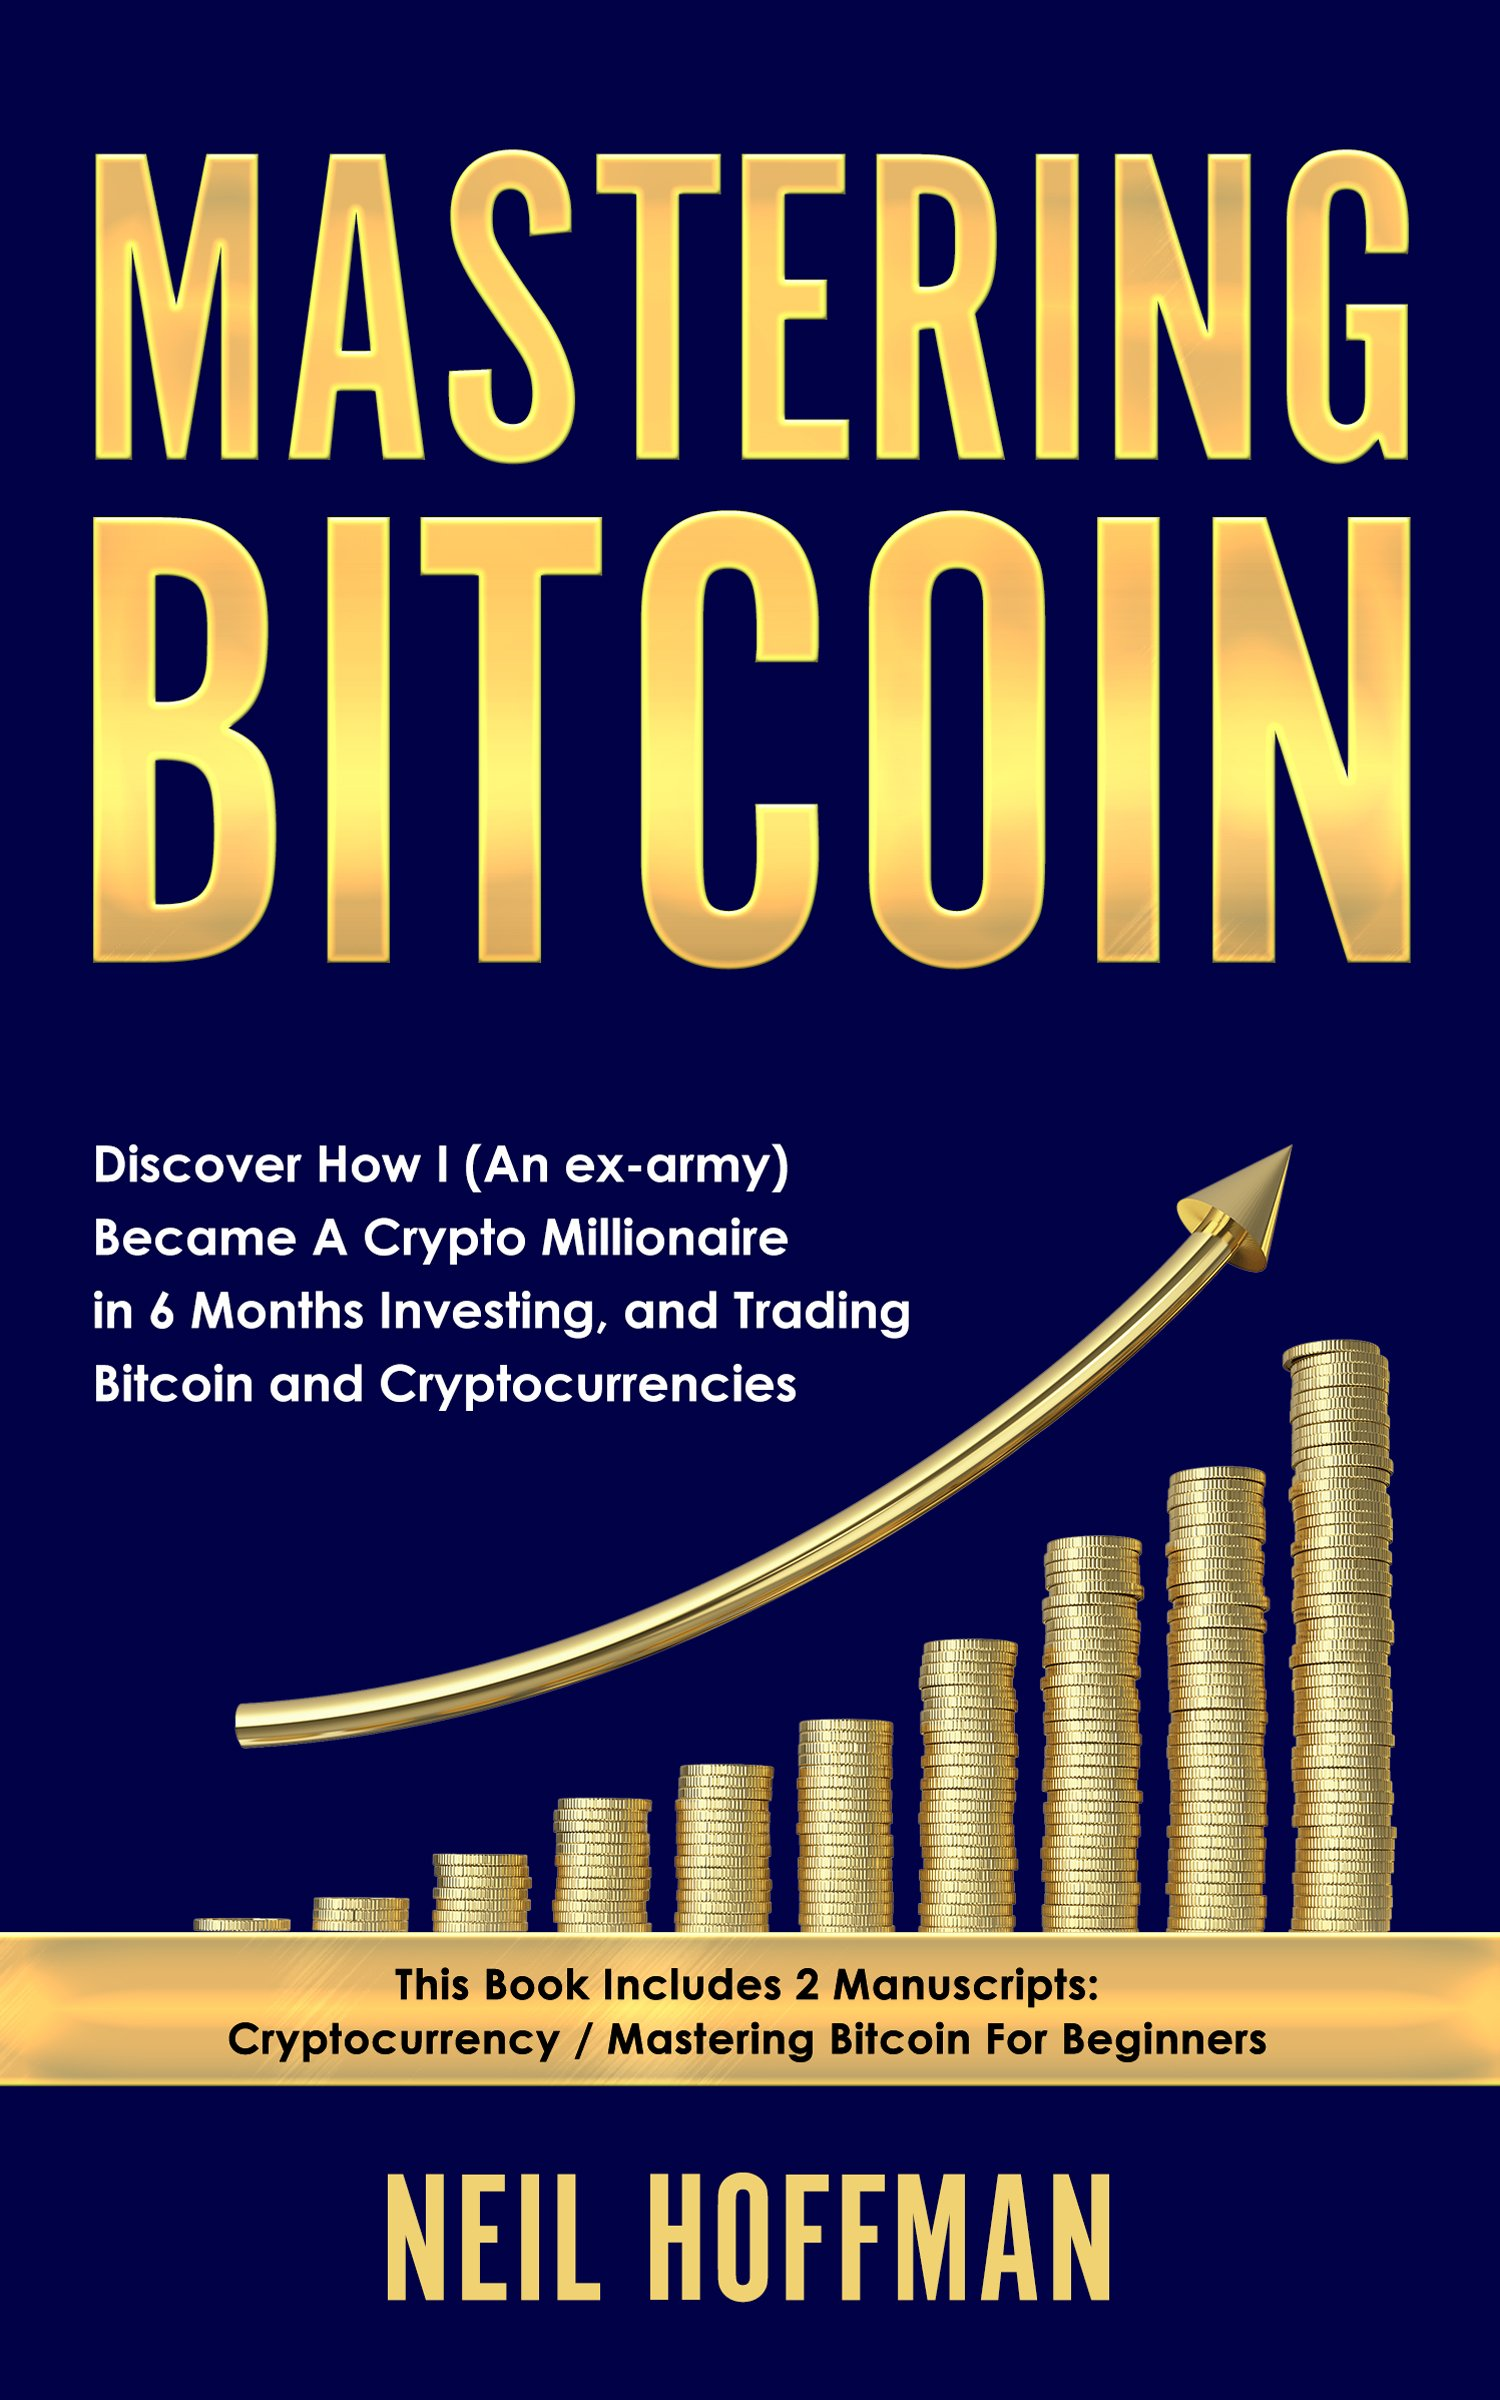 Bitcoin: Mastering Bitcoin: Discover How I (An ex-army) Became A Crypto Millionaire in 6 Months Investing and Trading Bitcoin and Cryptocurrencies (Bitcoin Trading Secrets) (English Edition)